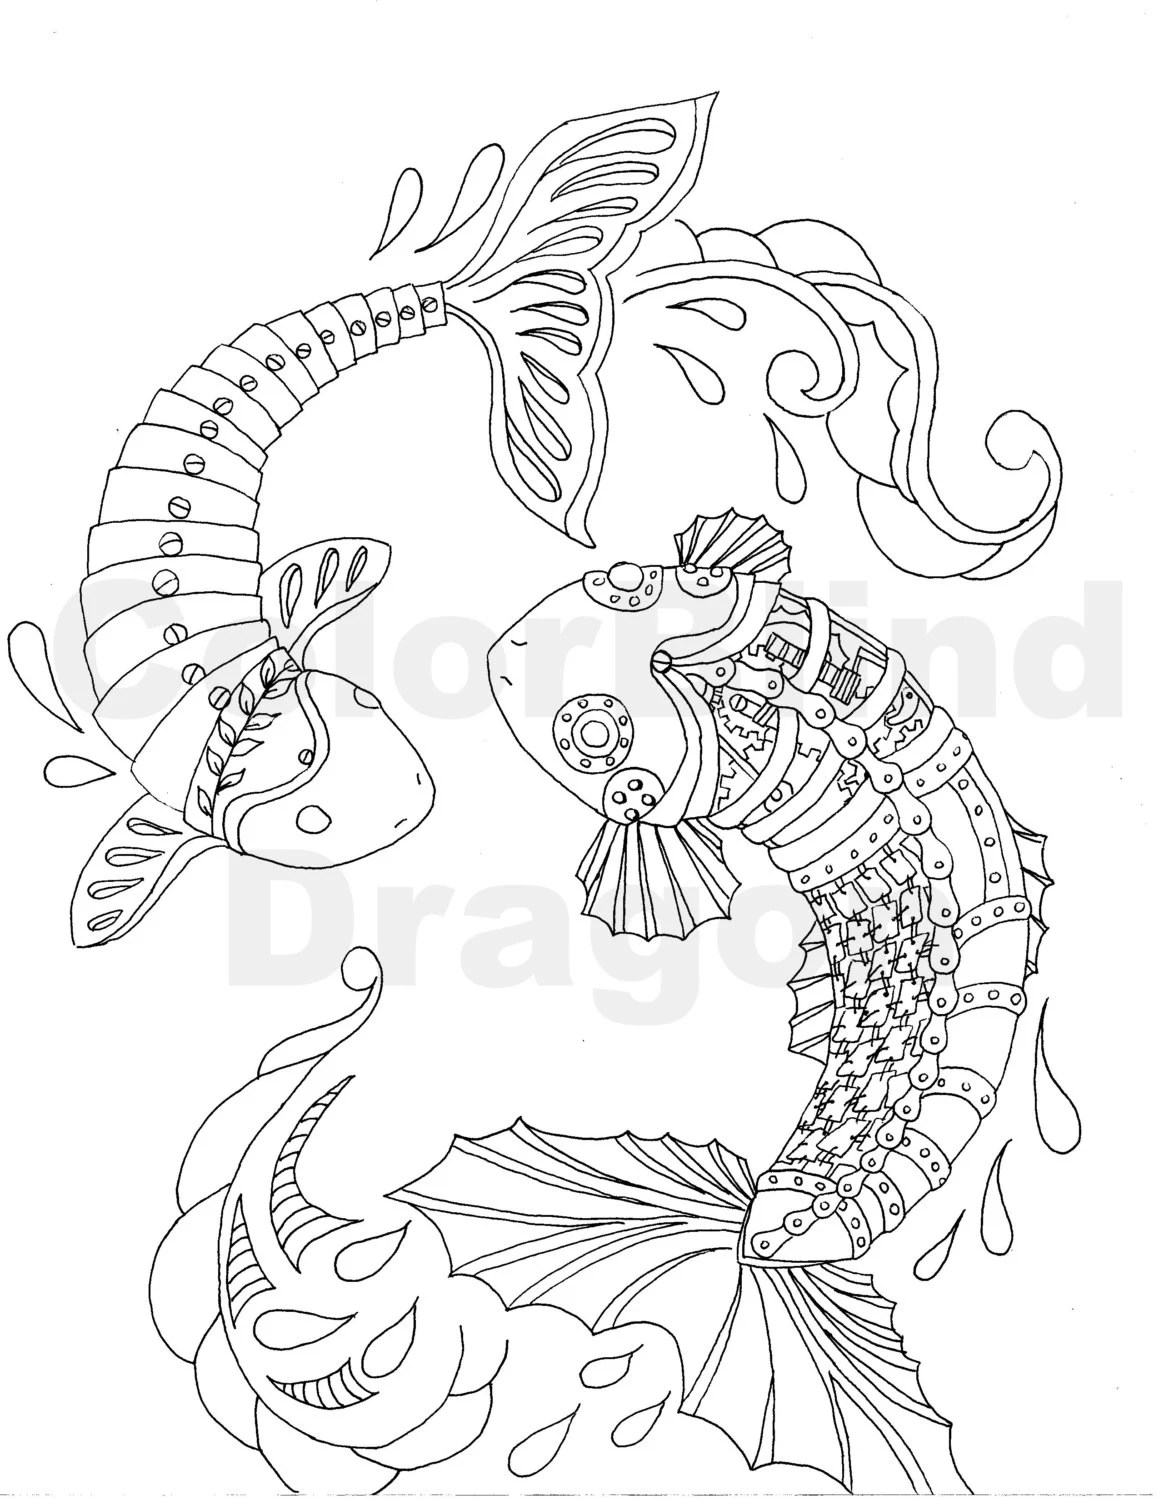 Steampunk Coloring Page fish coloring page koi by